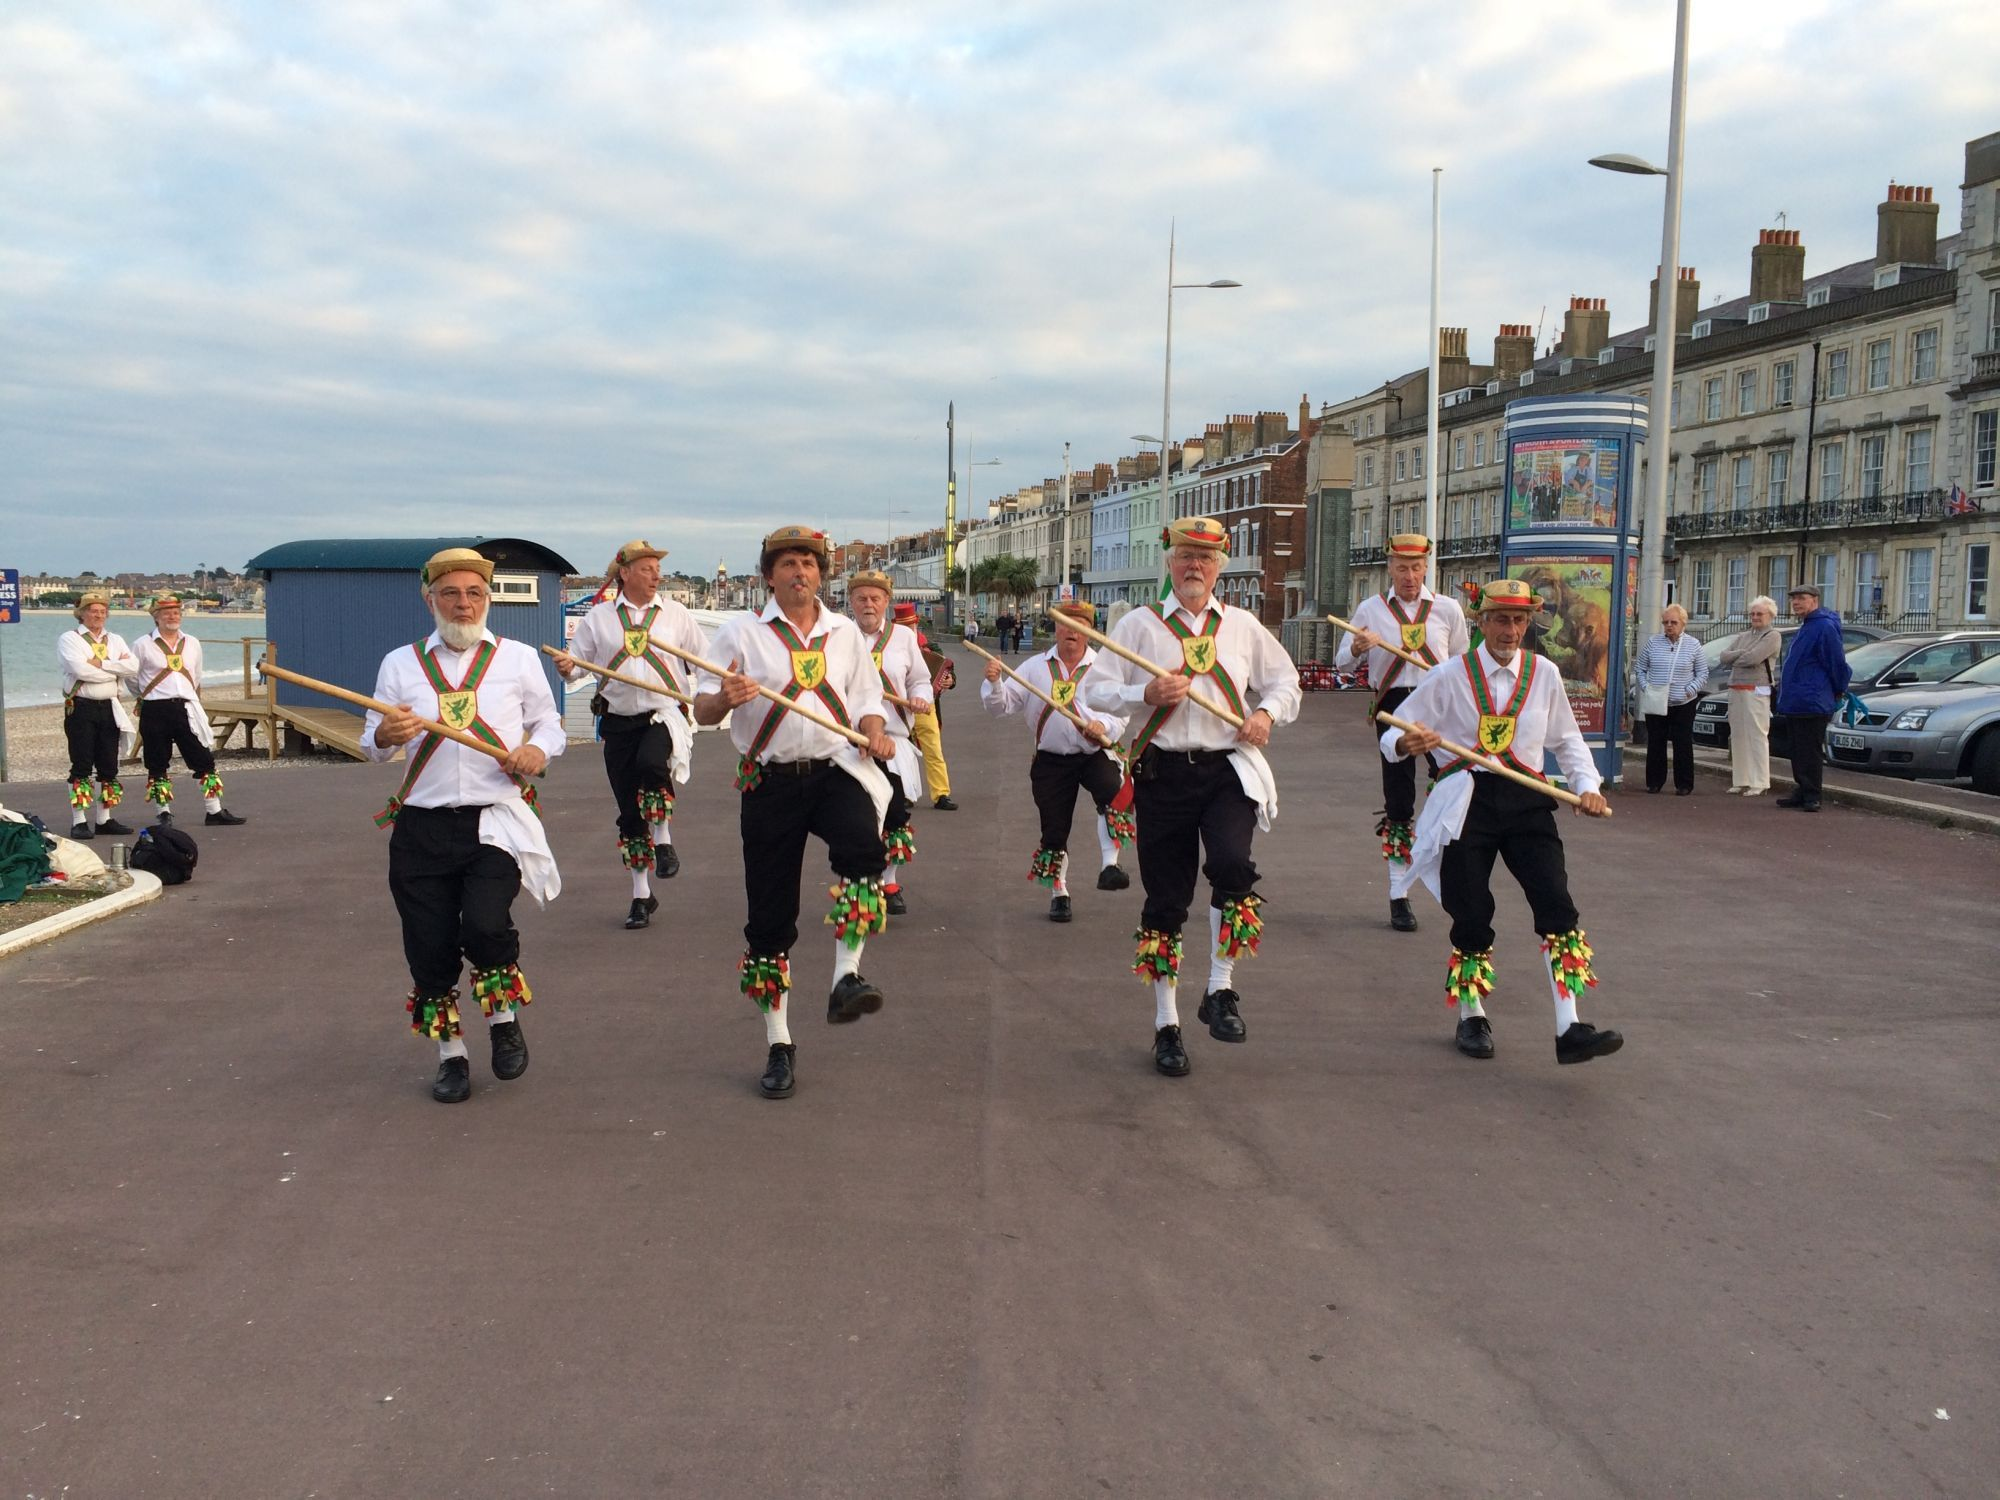 ALL IN LINE: Wessex Morris Men perform Ring of Bells from the Lichfield morris dancing tradition.  Picture: Mike Phelan.